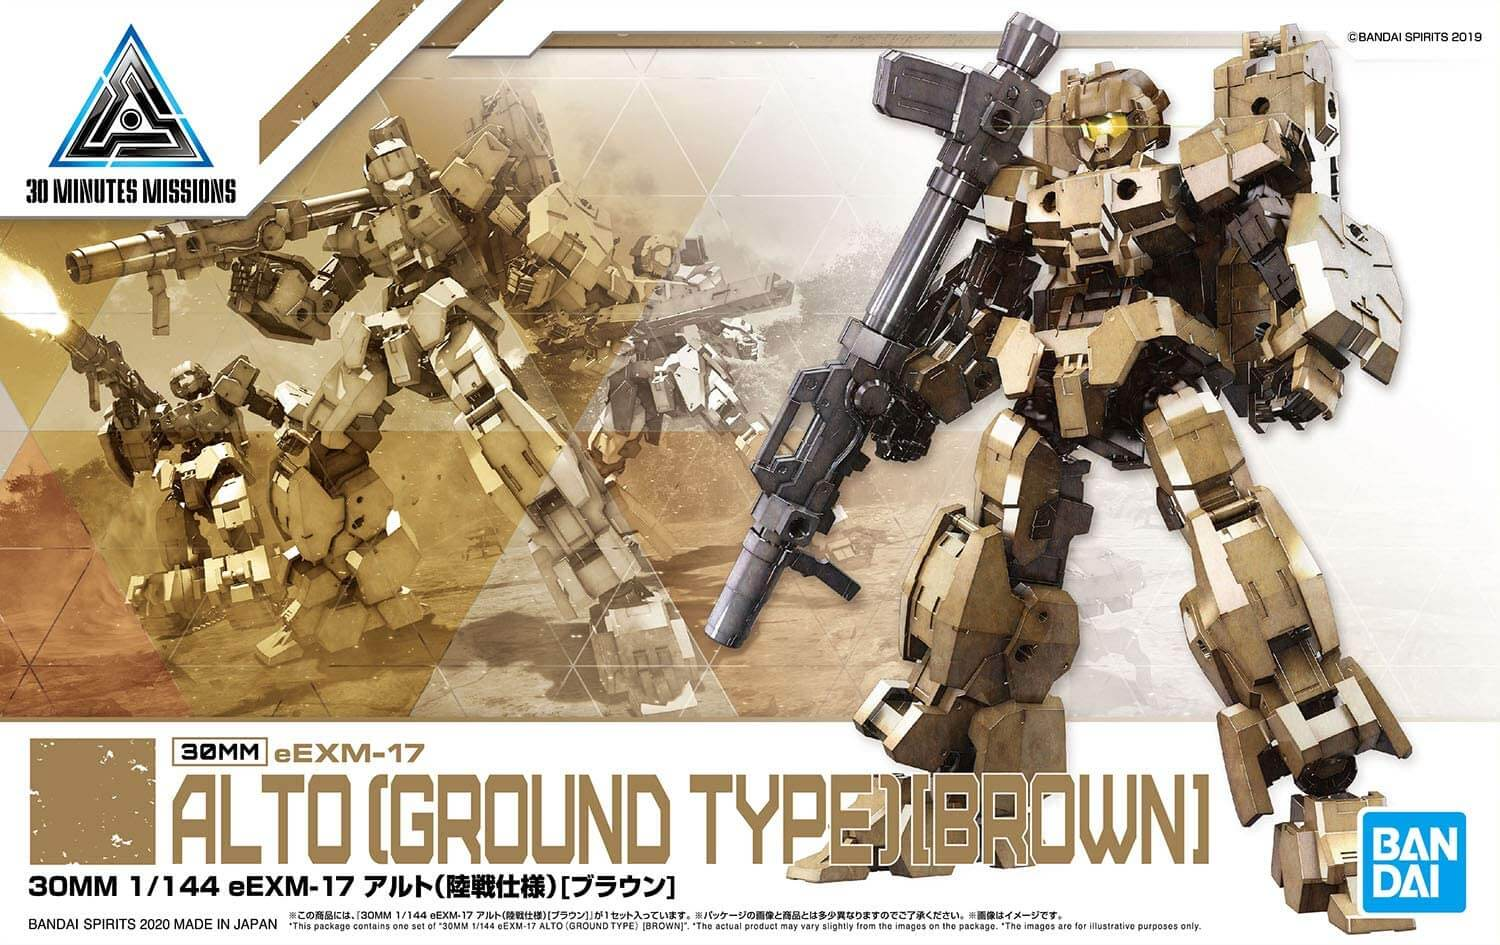 #19 Eexm-17 Alto Ground Type (Brown) 30 Minute Missions, Bandai Spirits 30MM